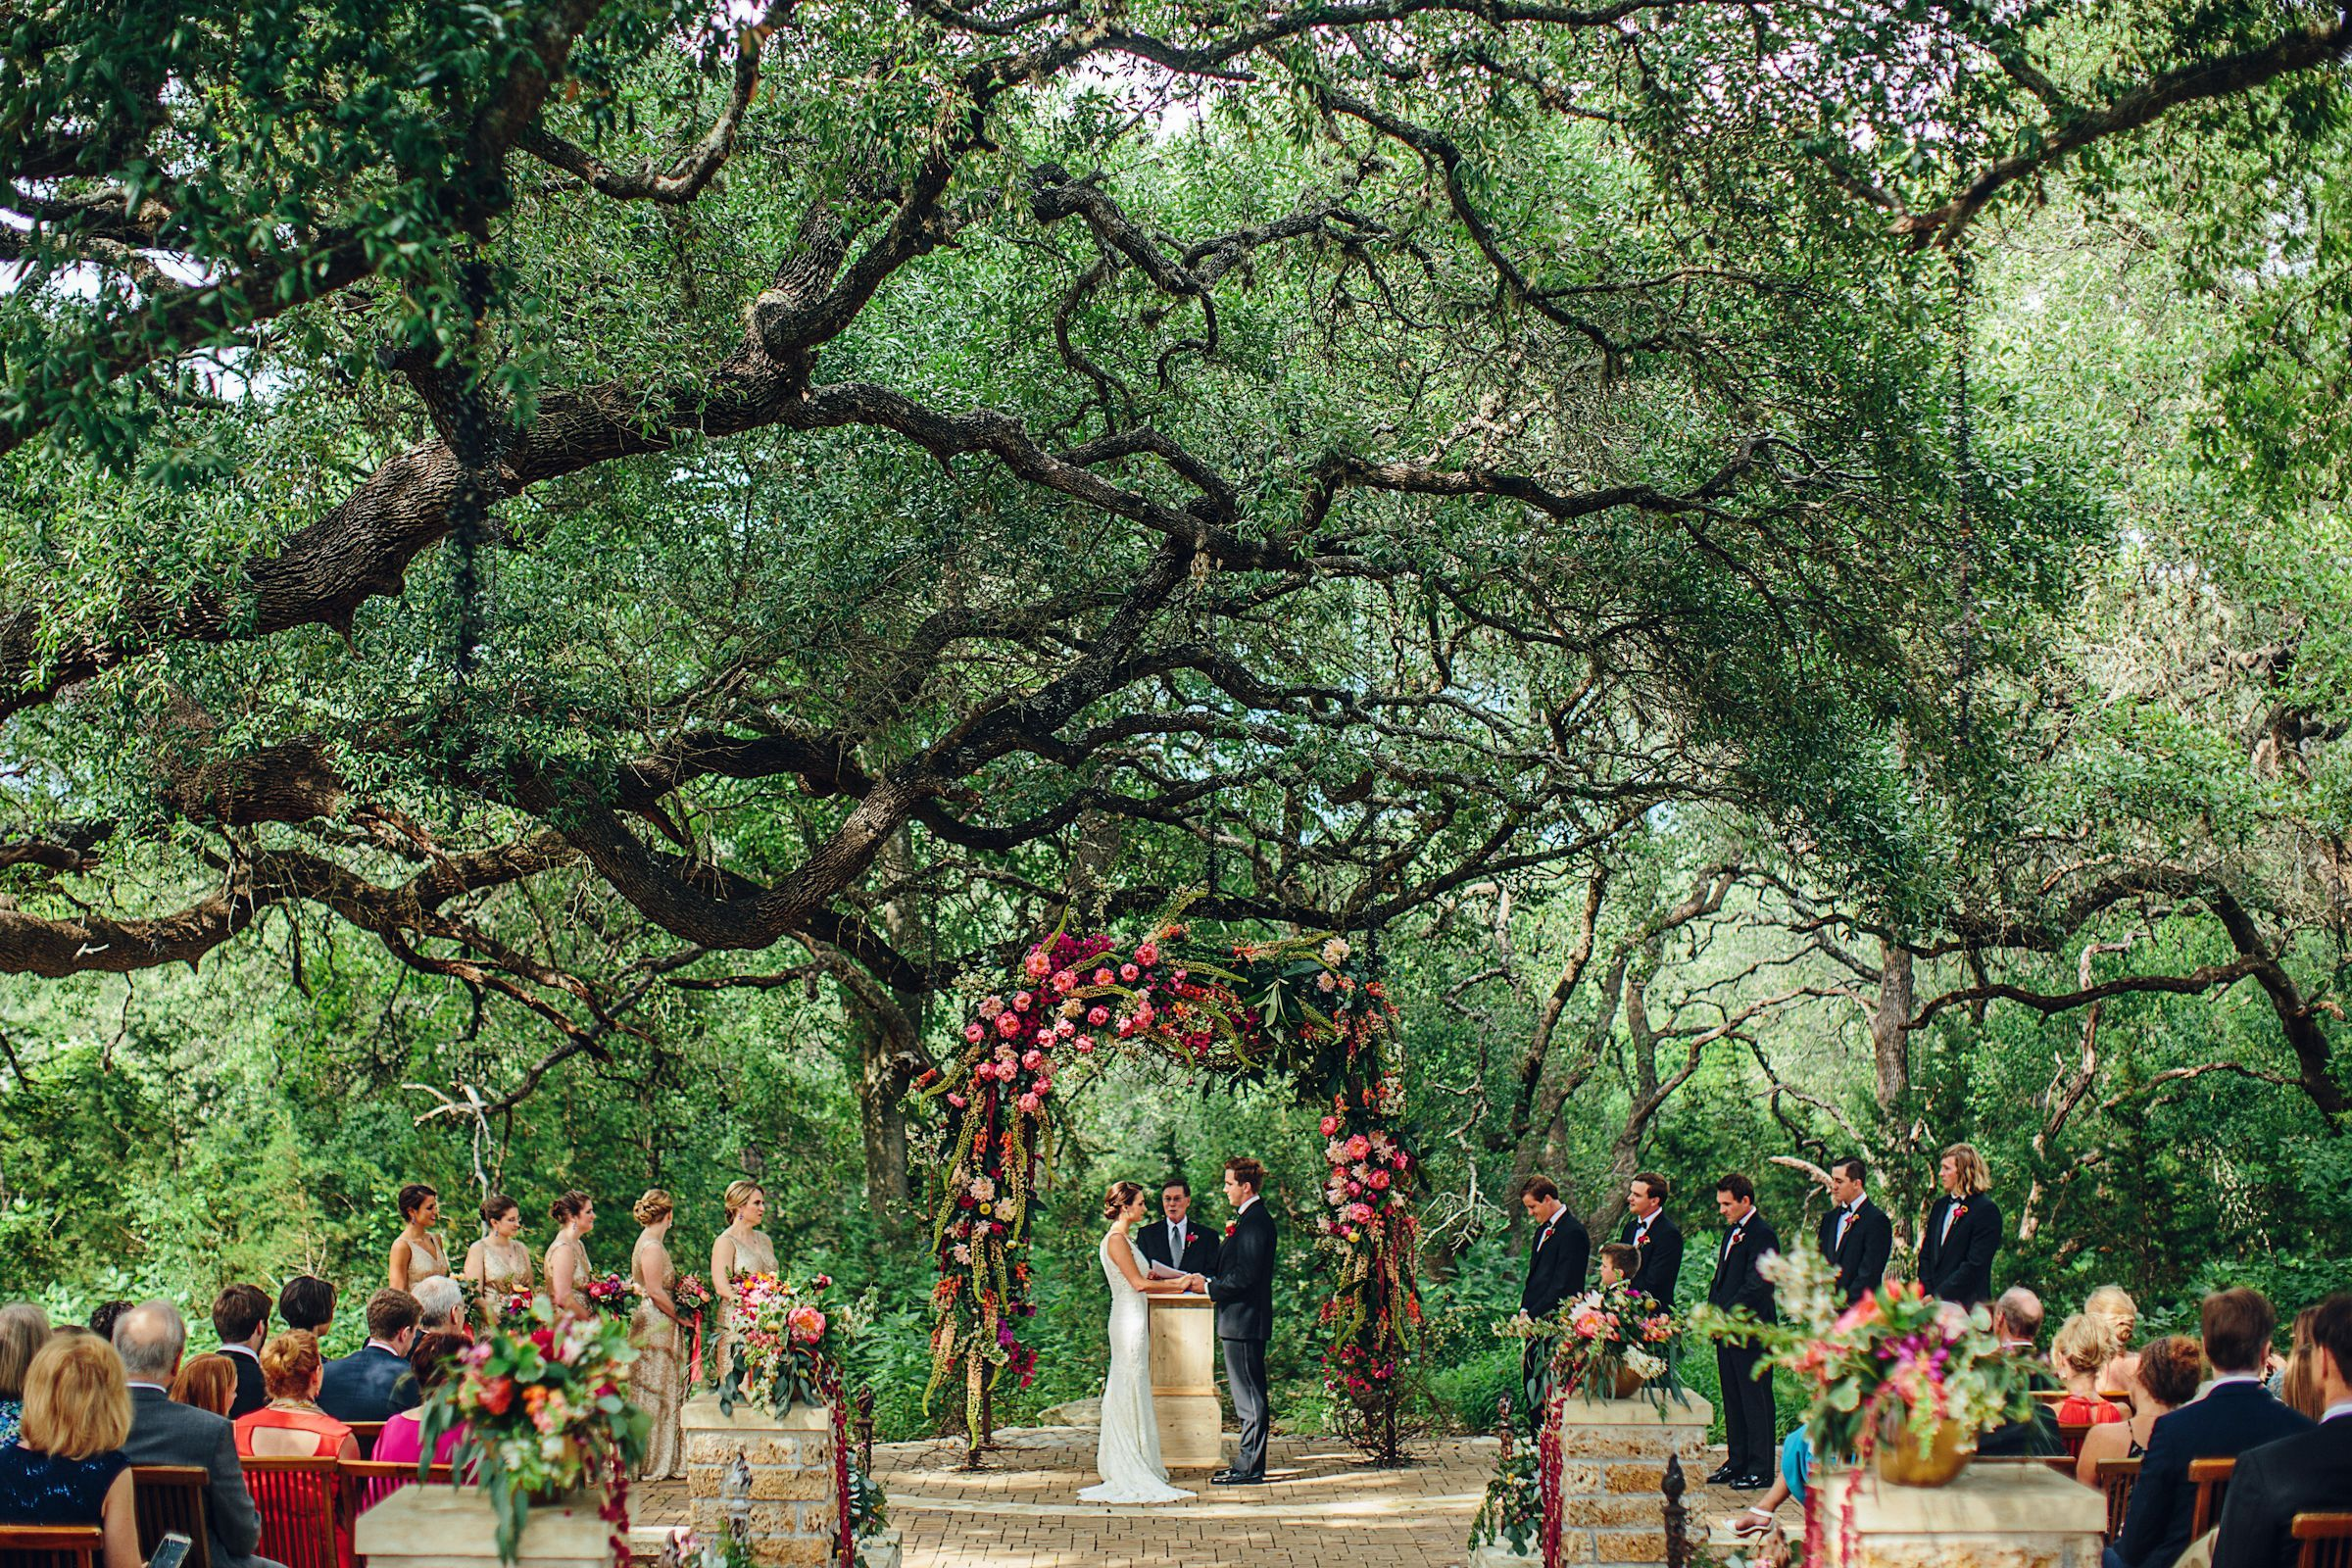 Camp Lucy Austin wedding venues, Dripping springs